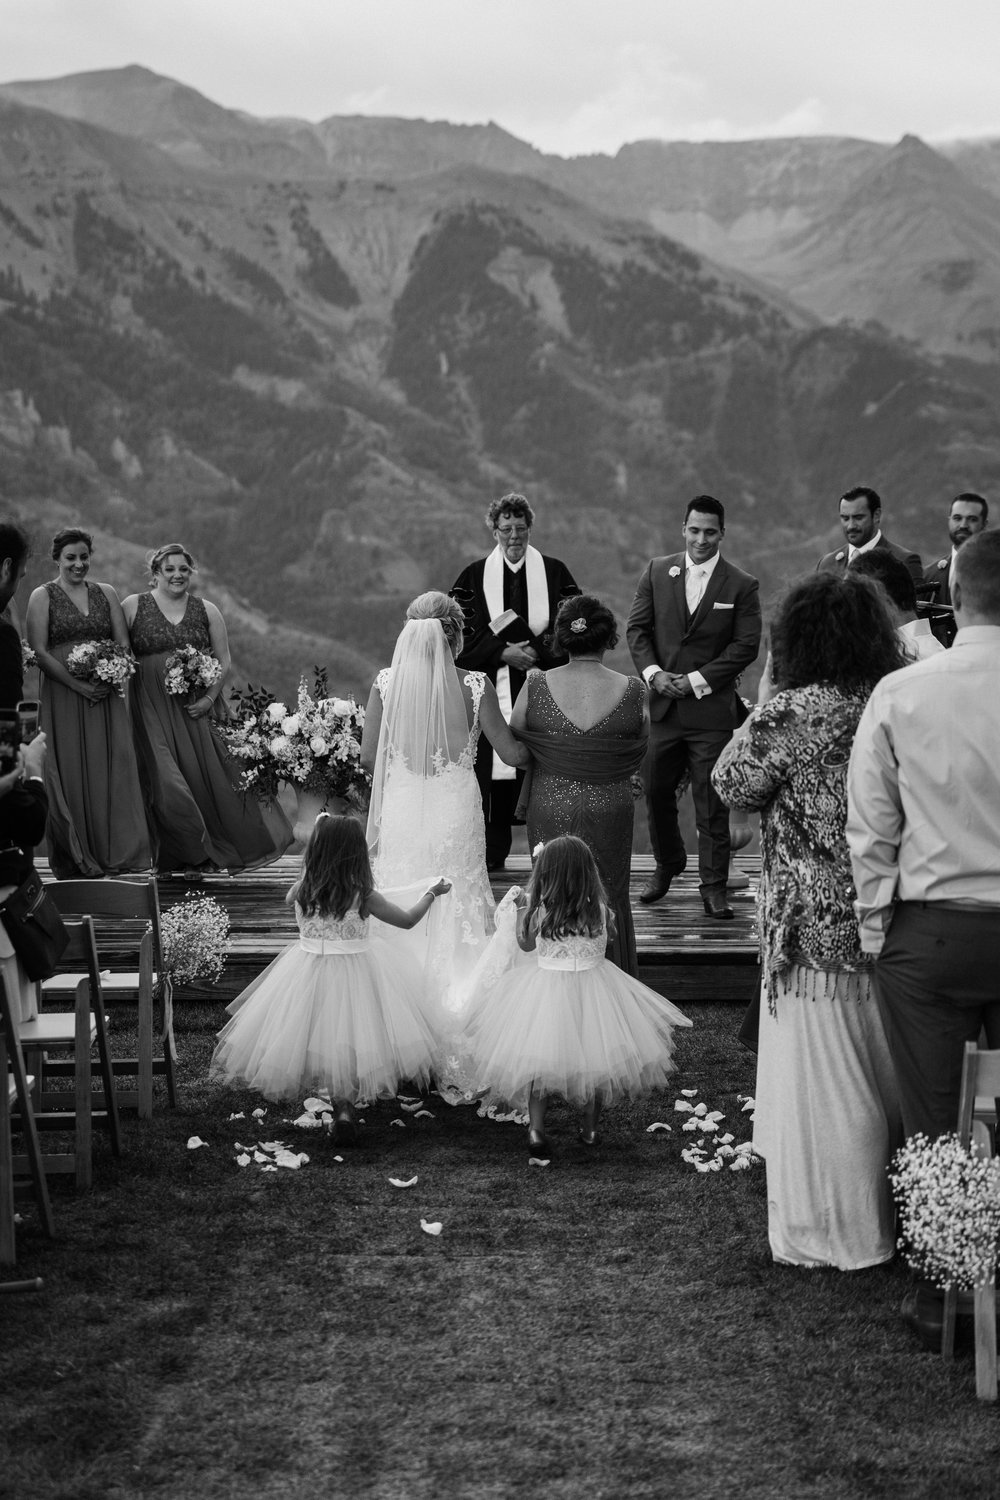 leahandashton-telluride-wedding-photography-0051.jpg